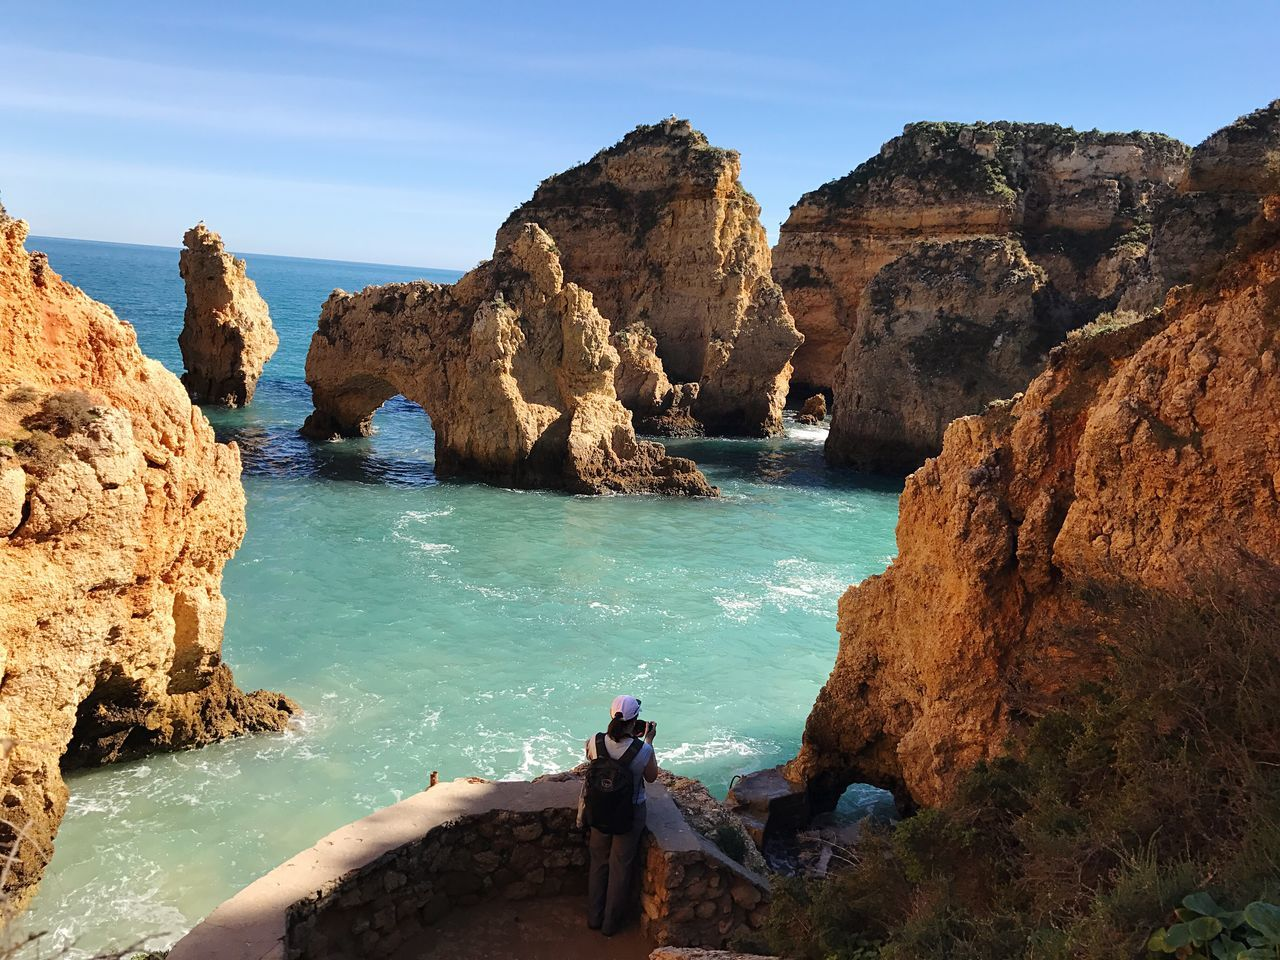 Ponta Da Piedade Lagos Algarve Portugal Sea Rock Formation Water Rock - Object Beauty In Nature Scenics Tranquility Nature Blue Cliff Sky Real People Day Tranquil Scene Geology Outdoors Idyllic Travel Destinations Horizon Over Water Vacations Tourism Tourist